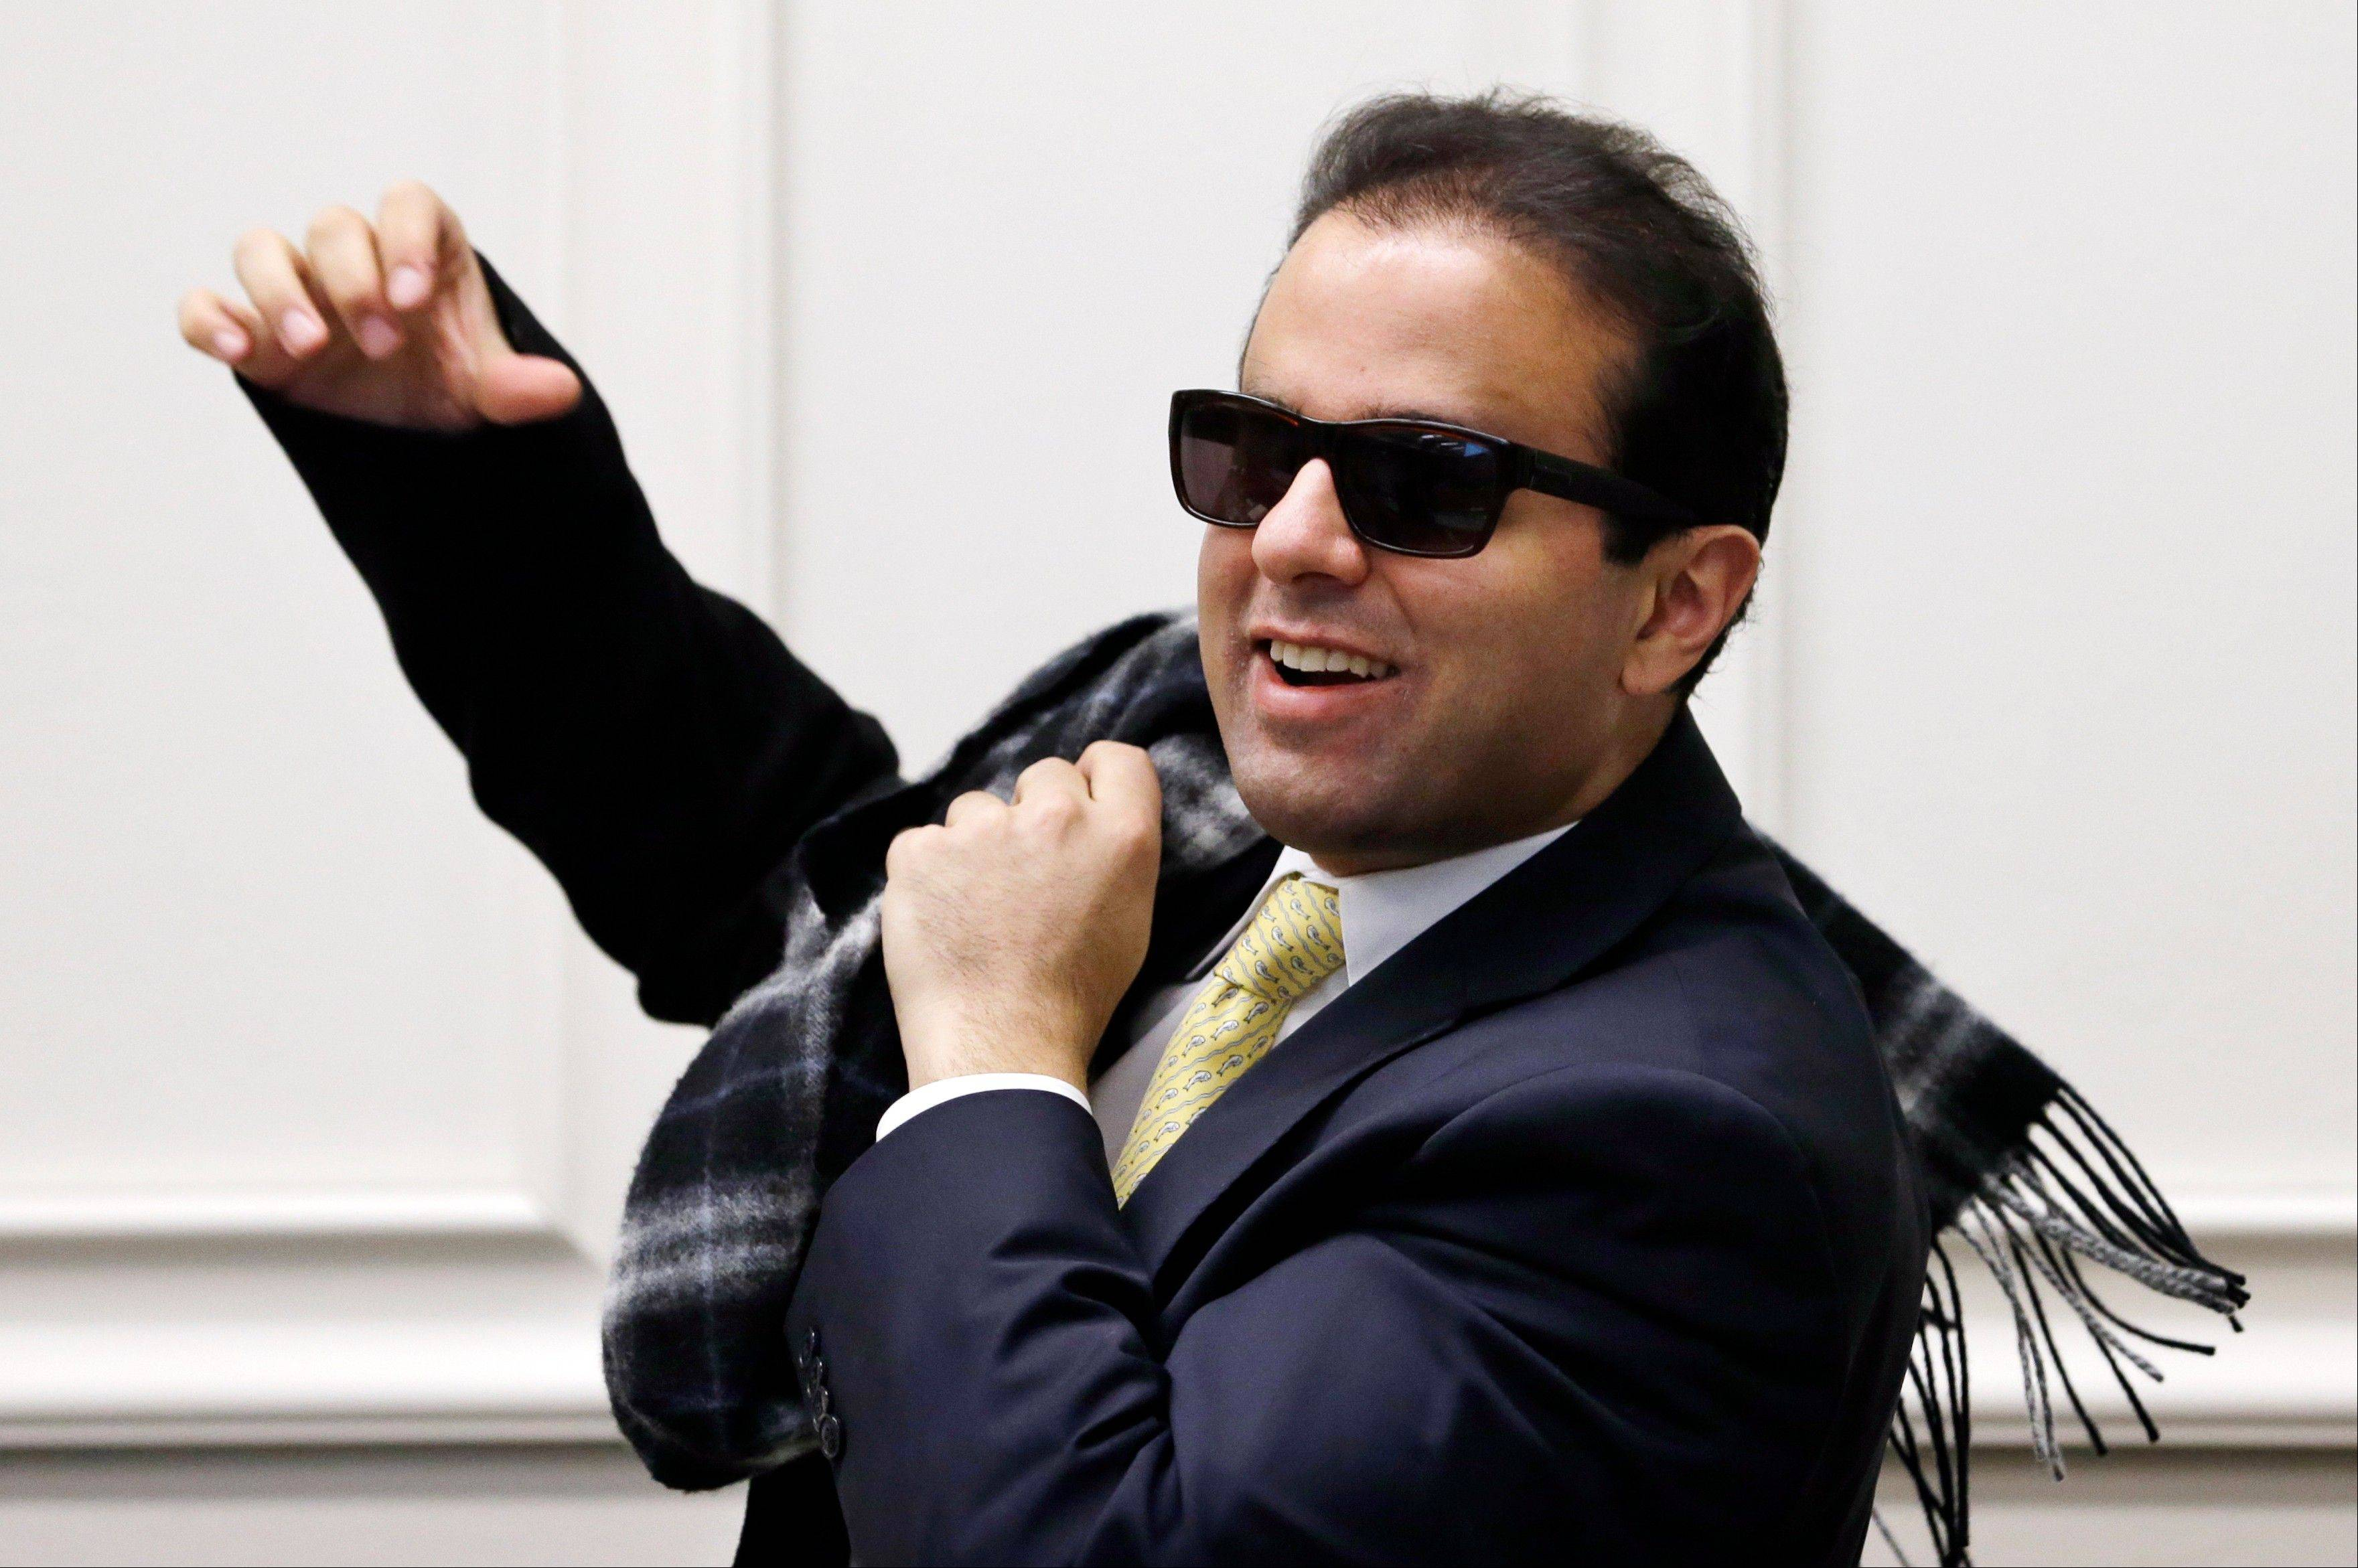 Washington Rep. Cyrus Habib is his state's first blind lawmaker in decades, and his life story is in many ways reflected in the policies he's now championing. The care he received as a child is something he co